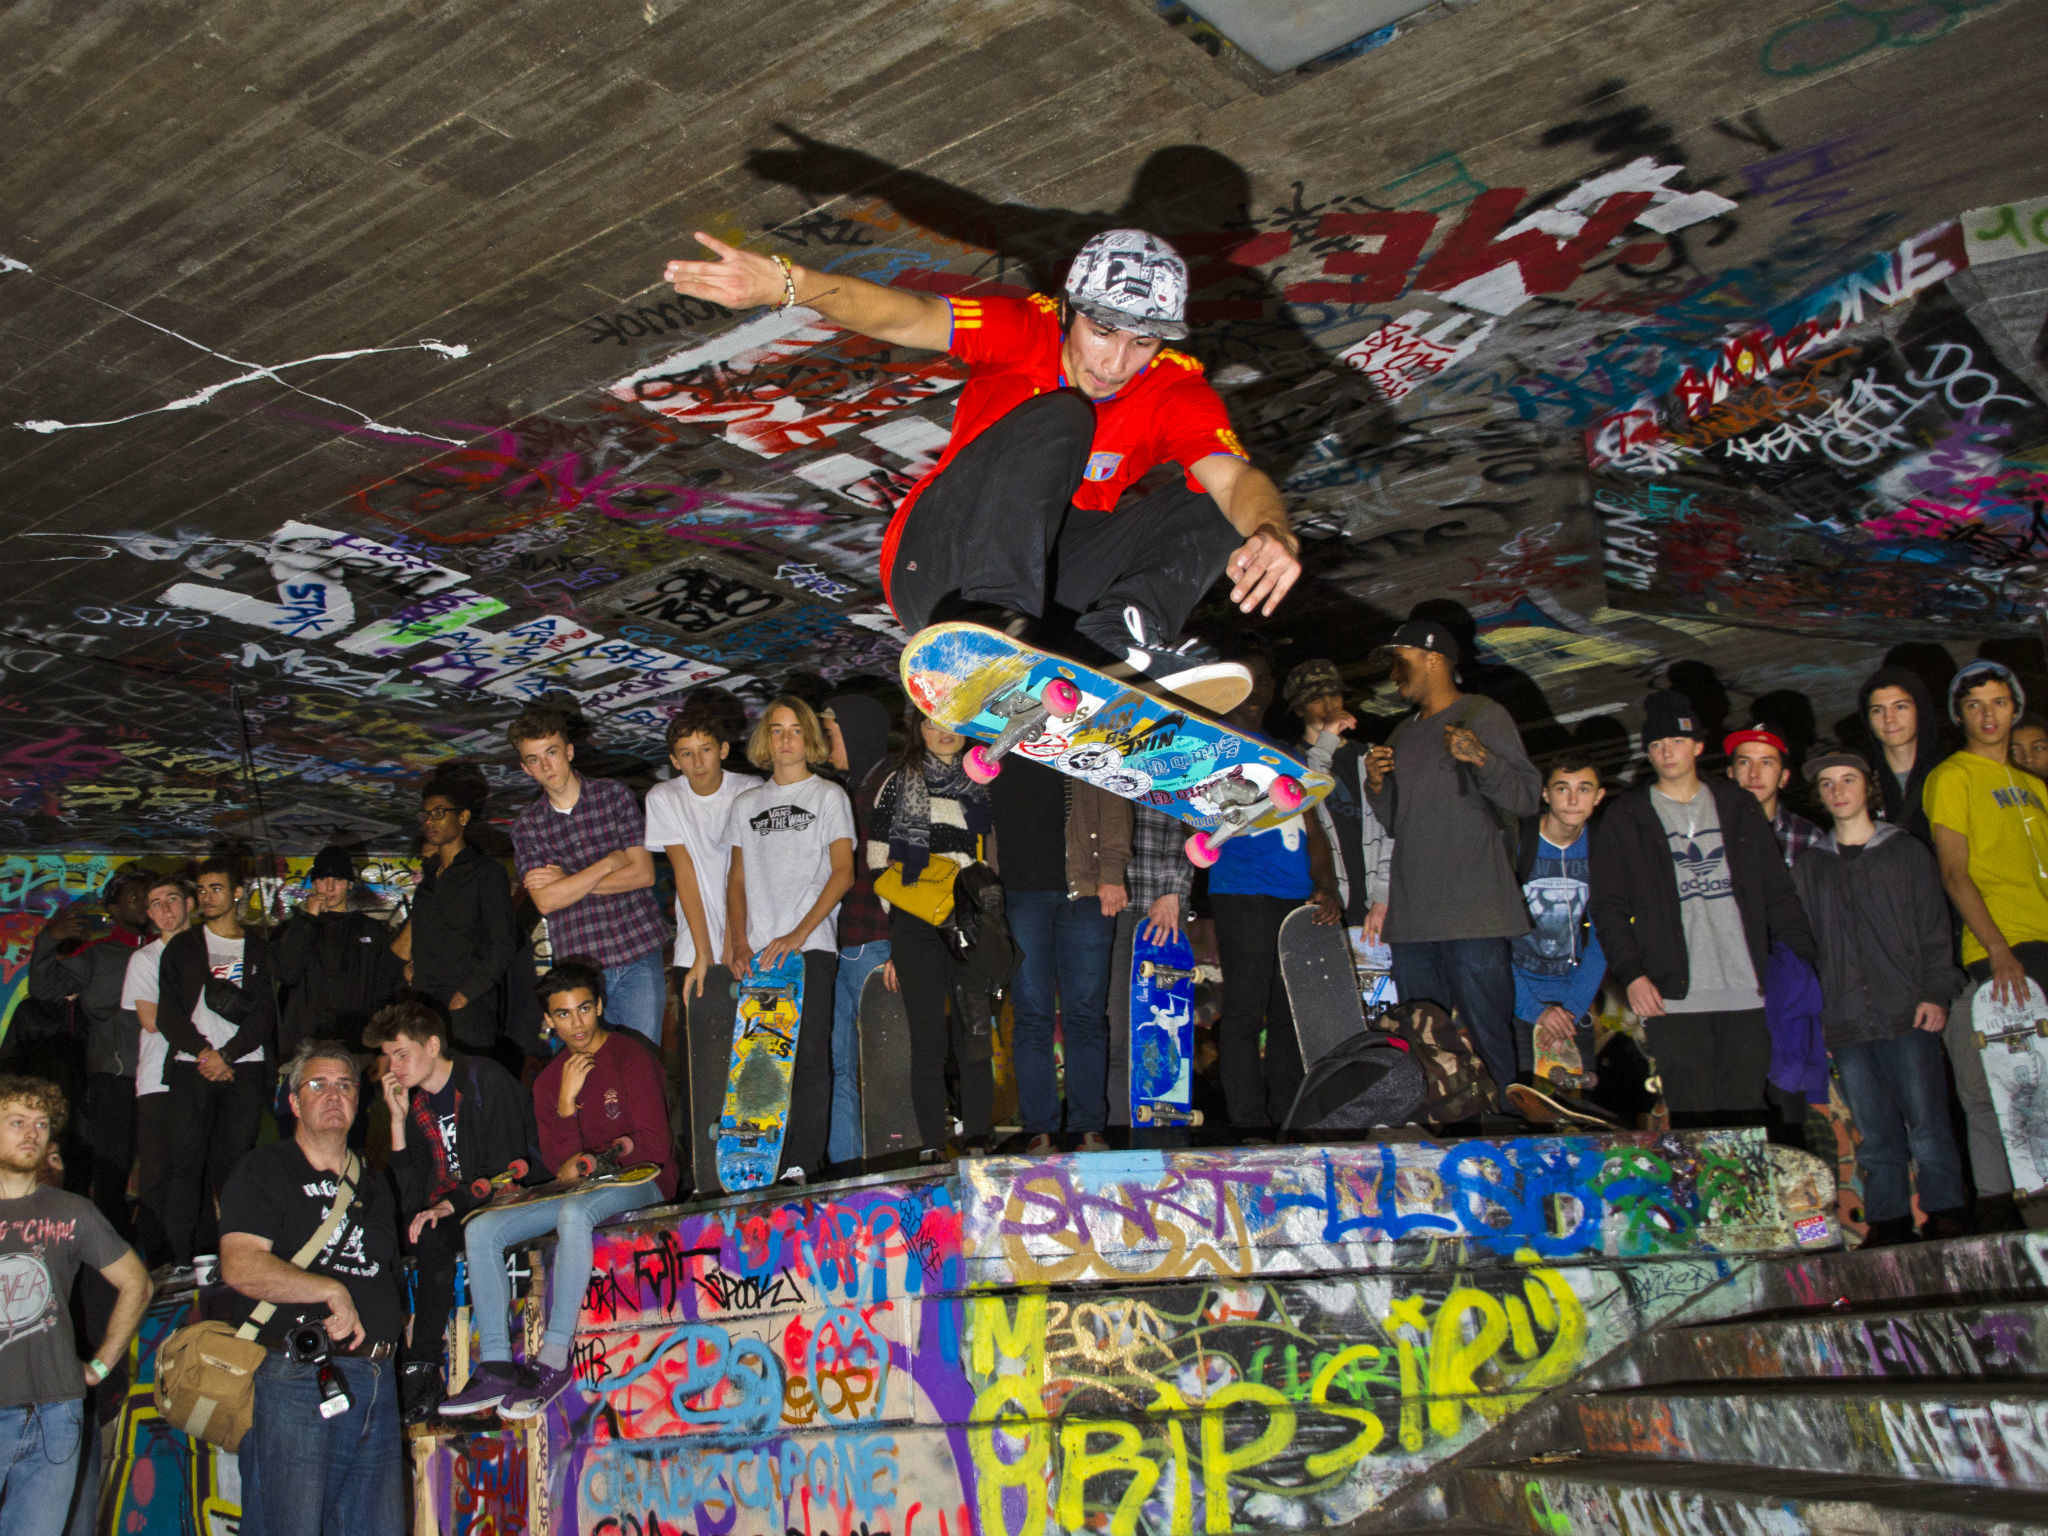 The Southbank skate space is about to get much bigger